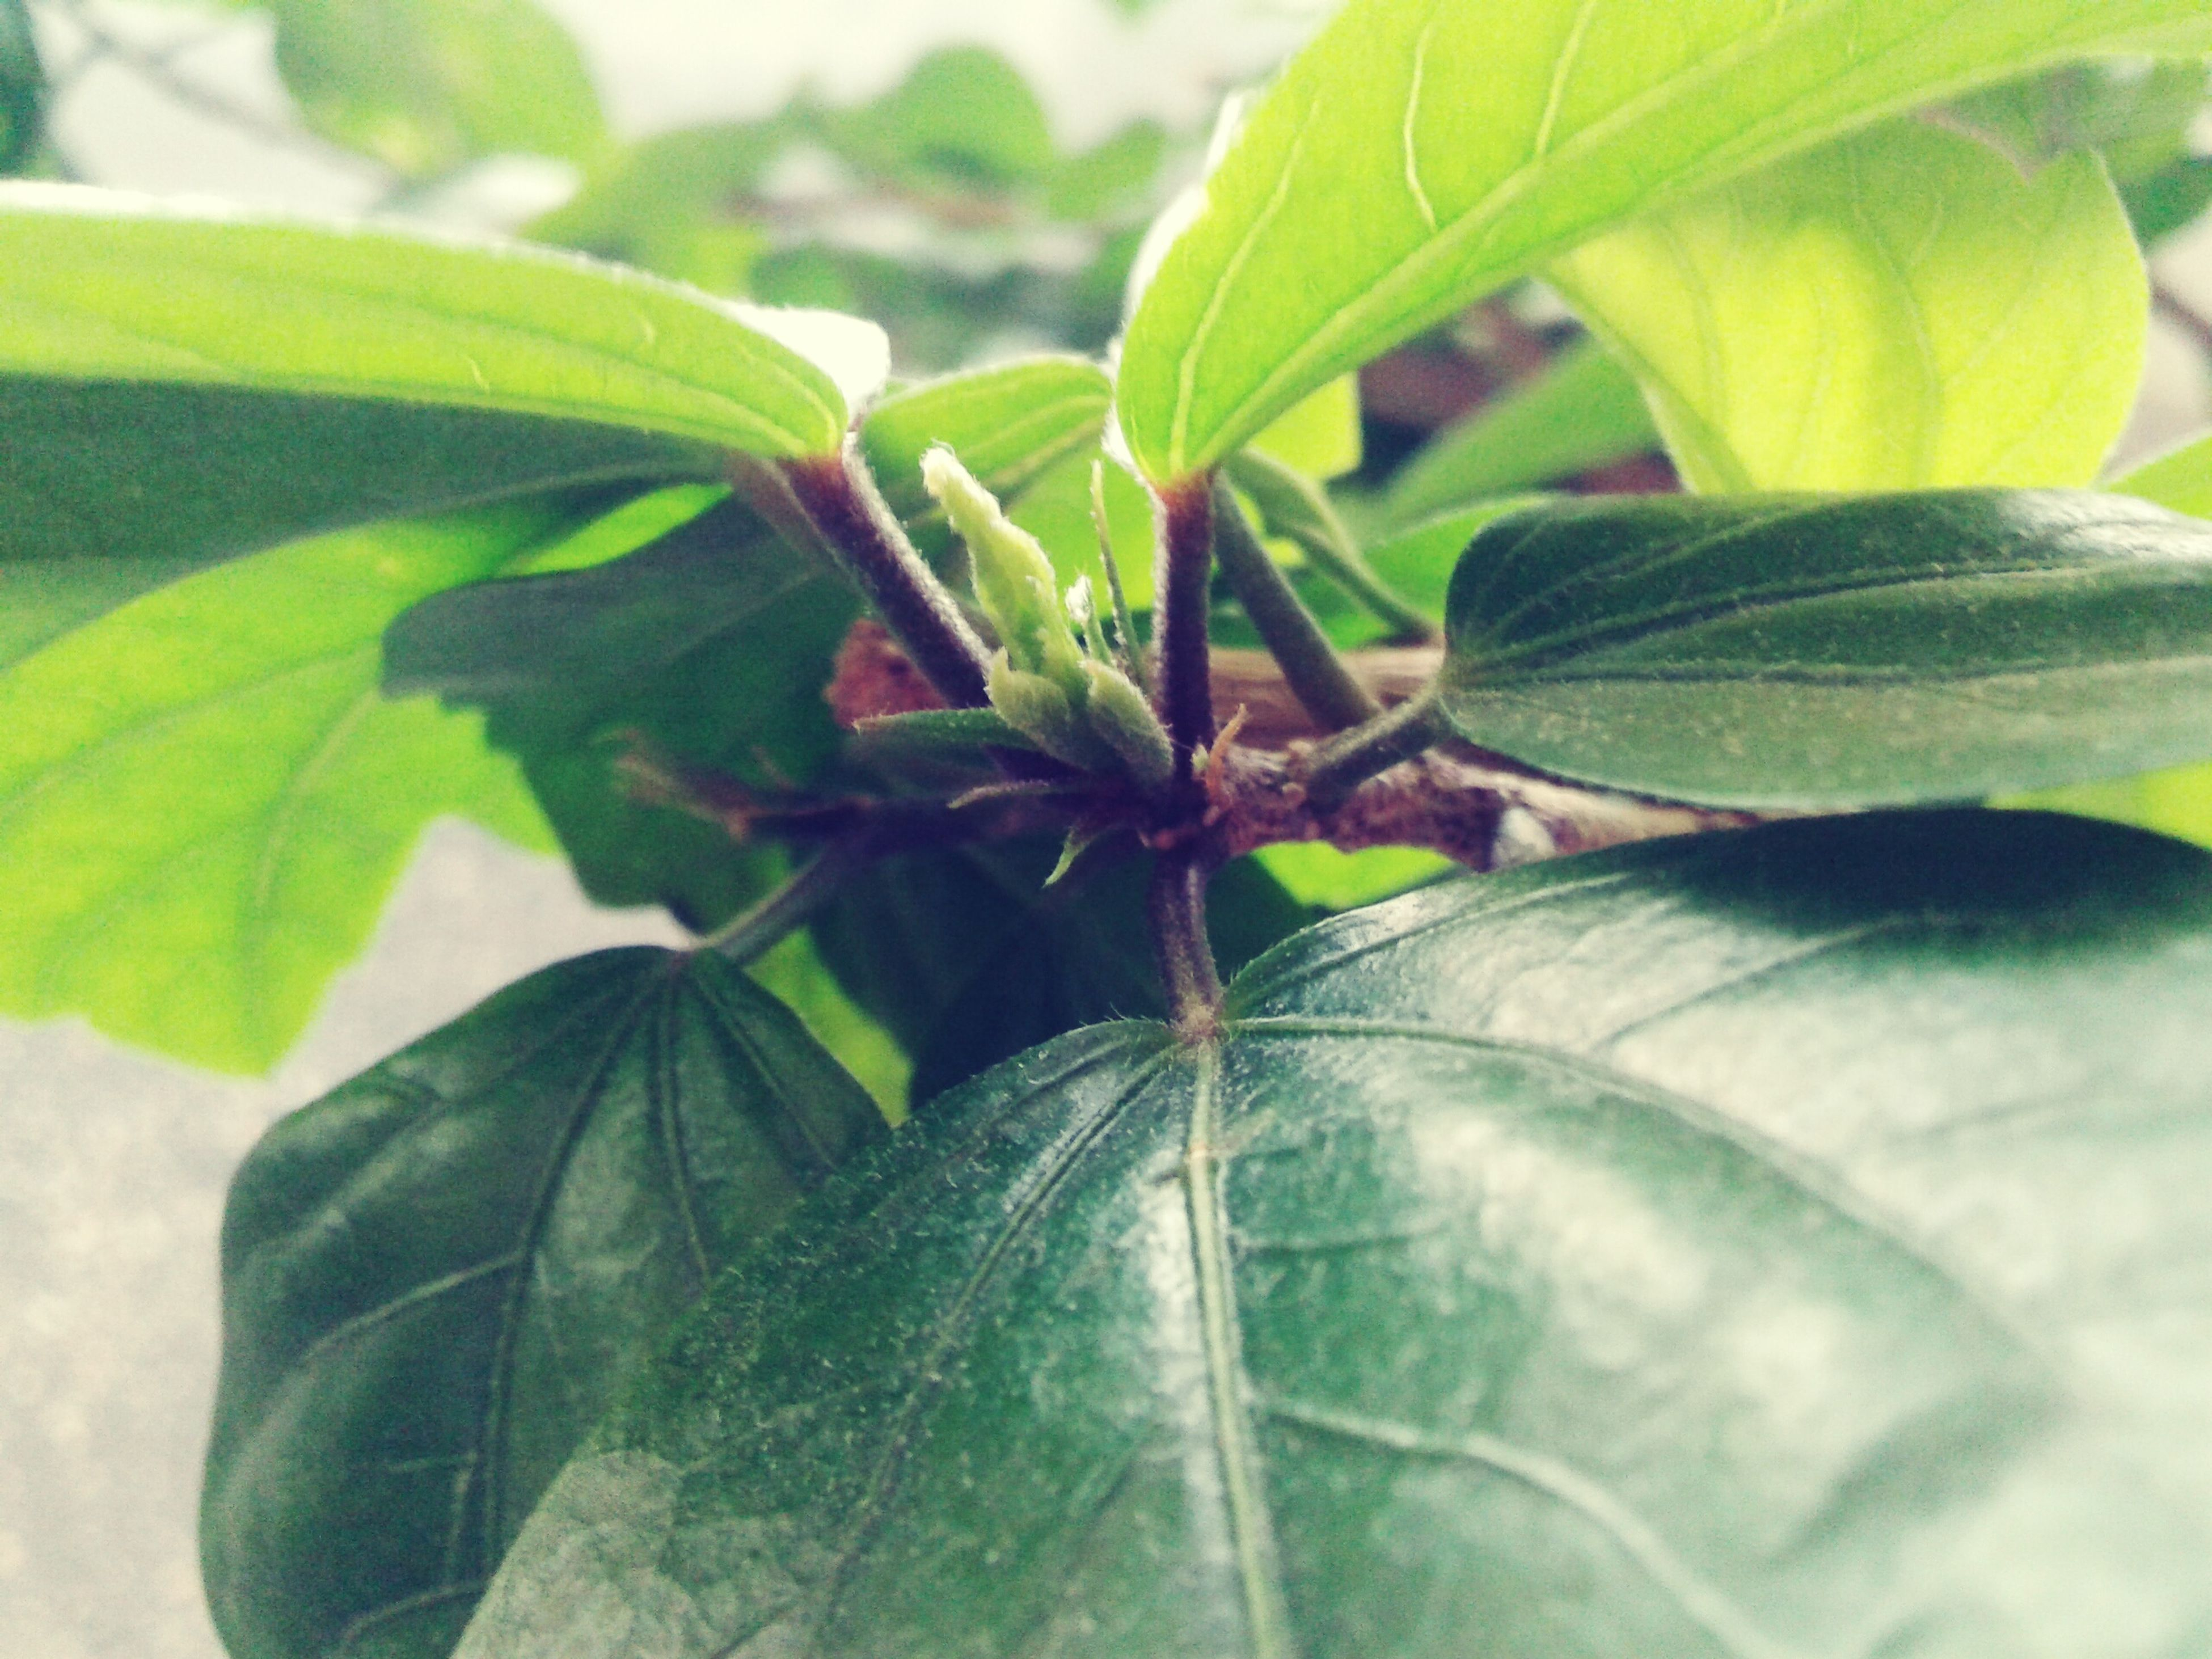 leaf, green color, growth, plant, close-up, leaf vein, freshness, nature, focus on foreground, beauty in nature, leaves, natural pattern, no people, green, day, outdoors, fragility, botany, sunlight, growing